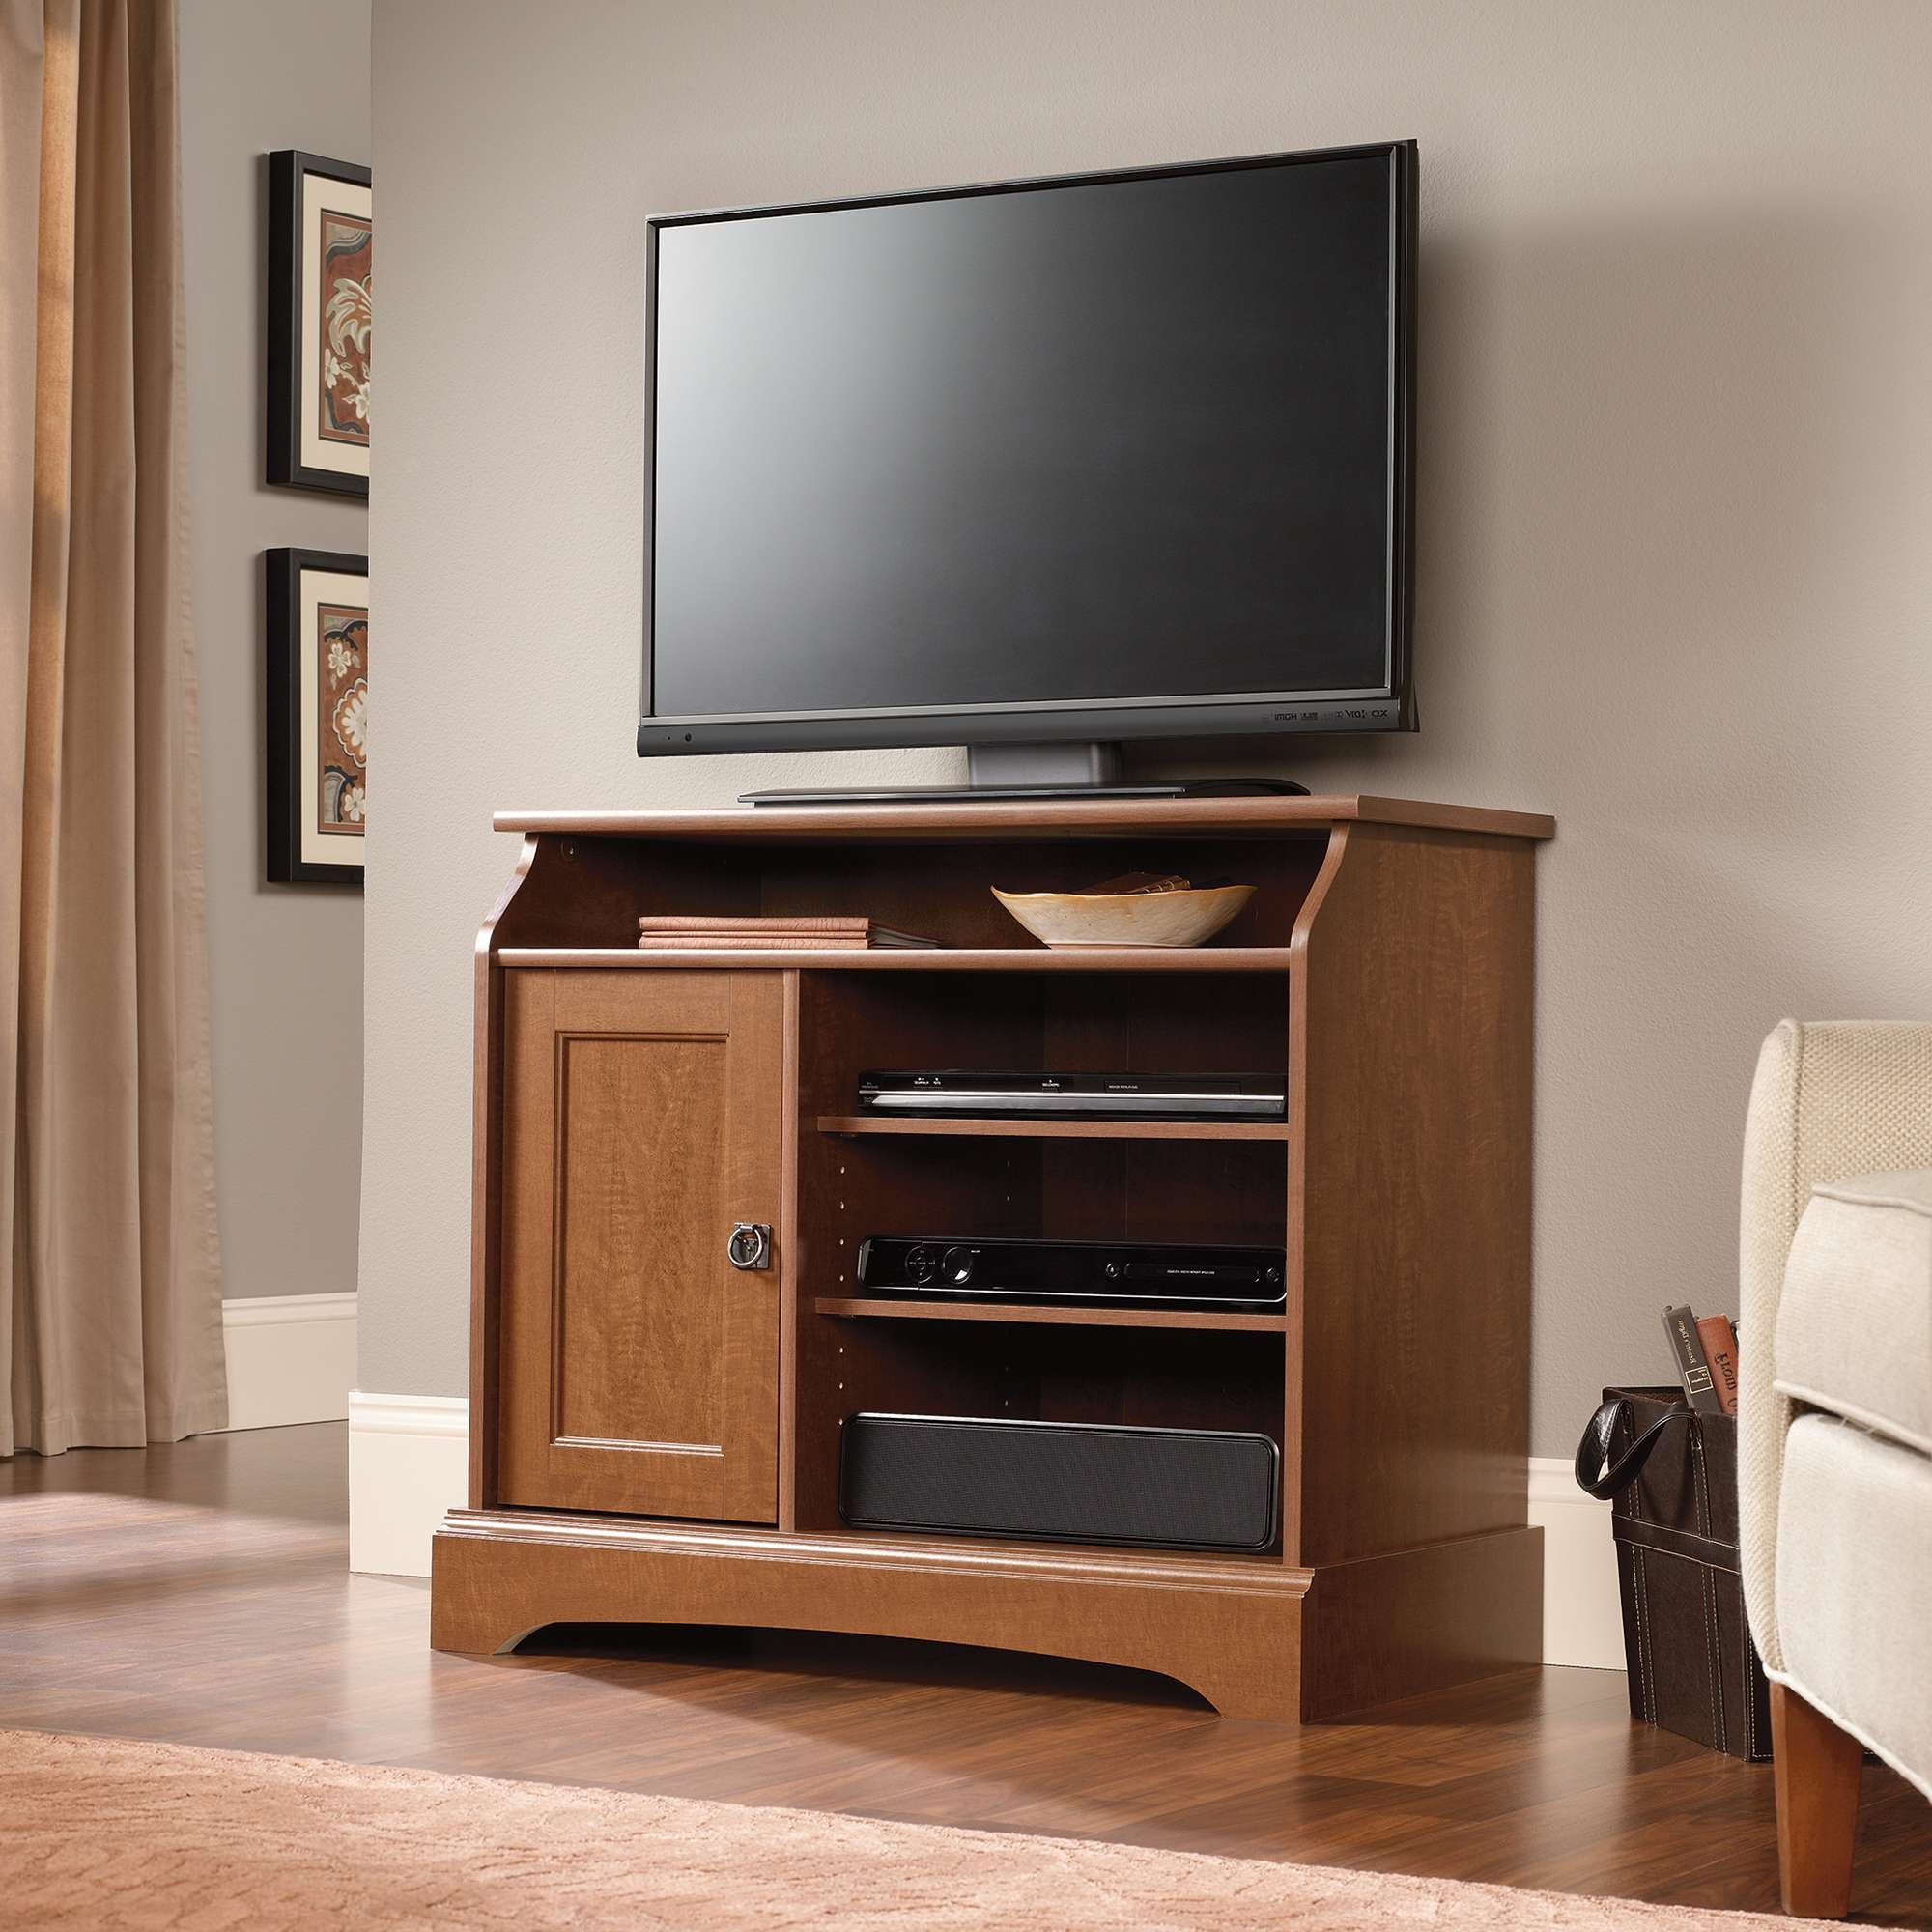 Sauder Select | Highboy Tv Stand | 408972 | Sauder With Maple Tv Stands (View 10 of 20)